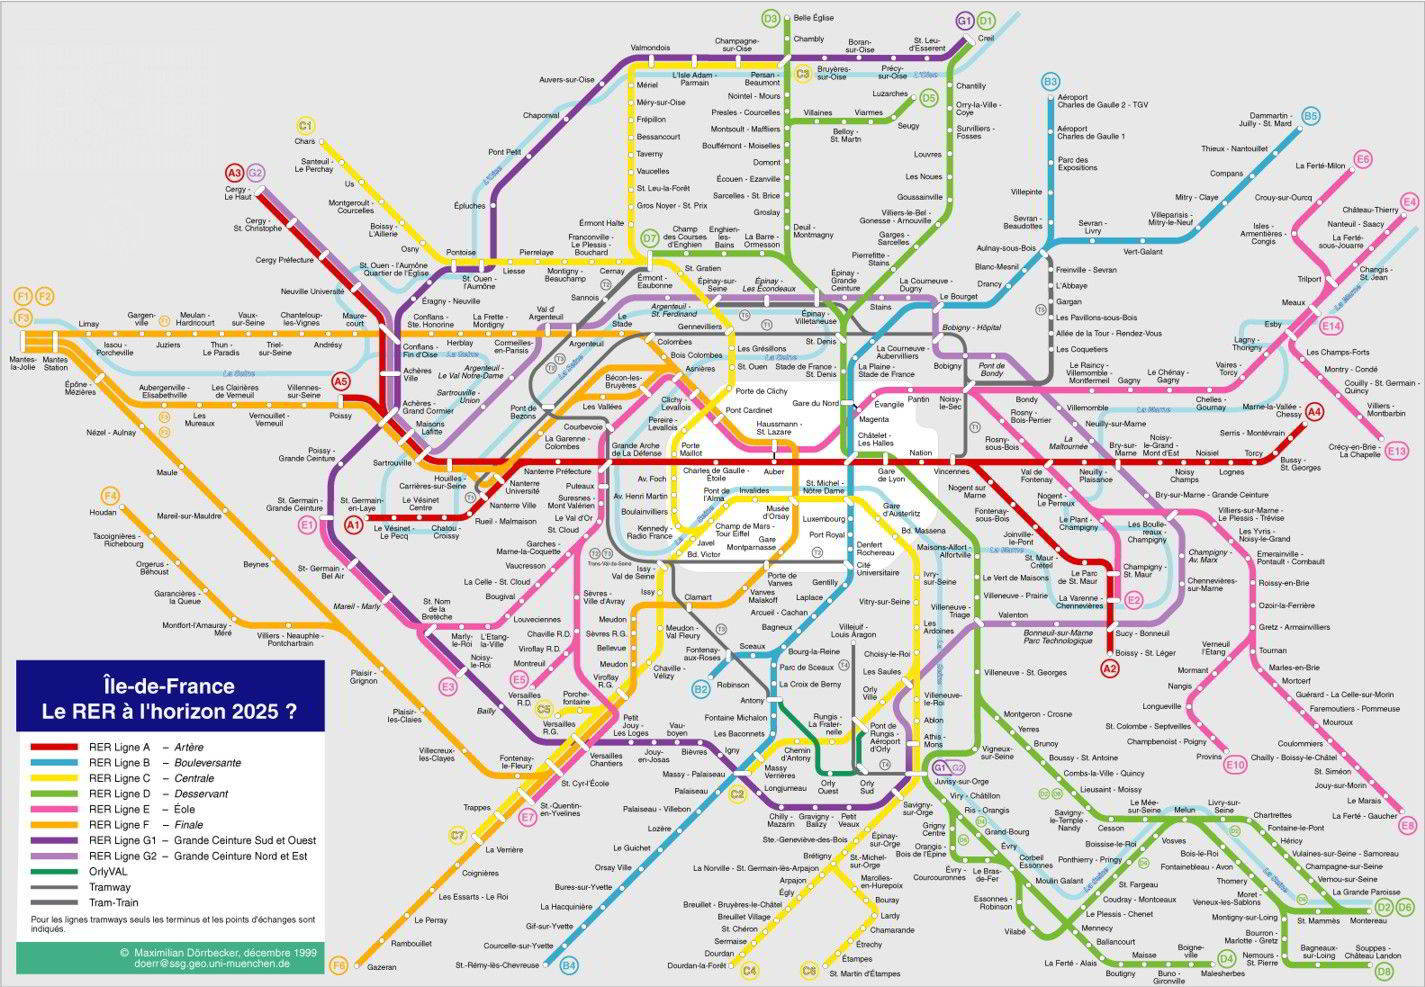 paris subway map paris metro mapa metro. Black Bedroom Furniture Sets. Home Design Ideas